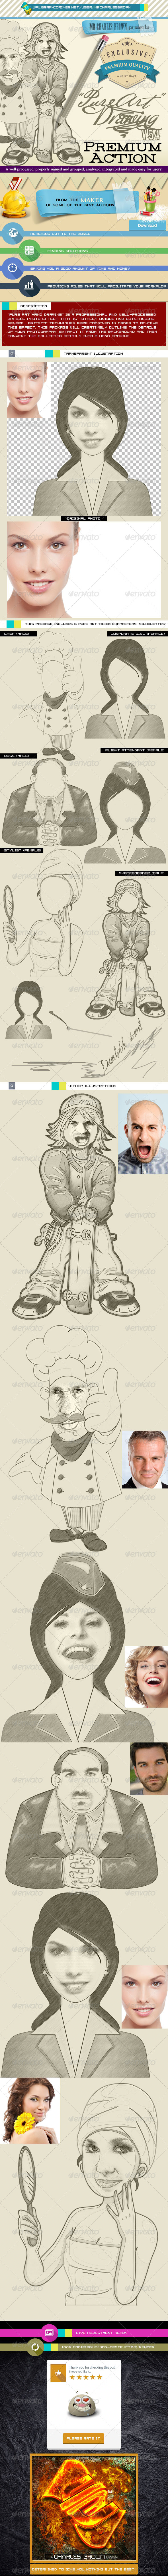 GraphicRiver Pure Art Hand Drawing 54 Mixed Characters Kit 6694415